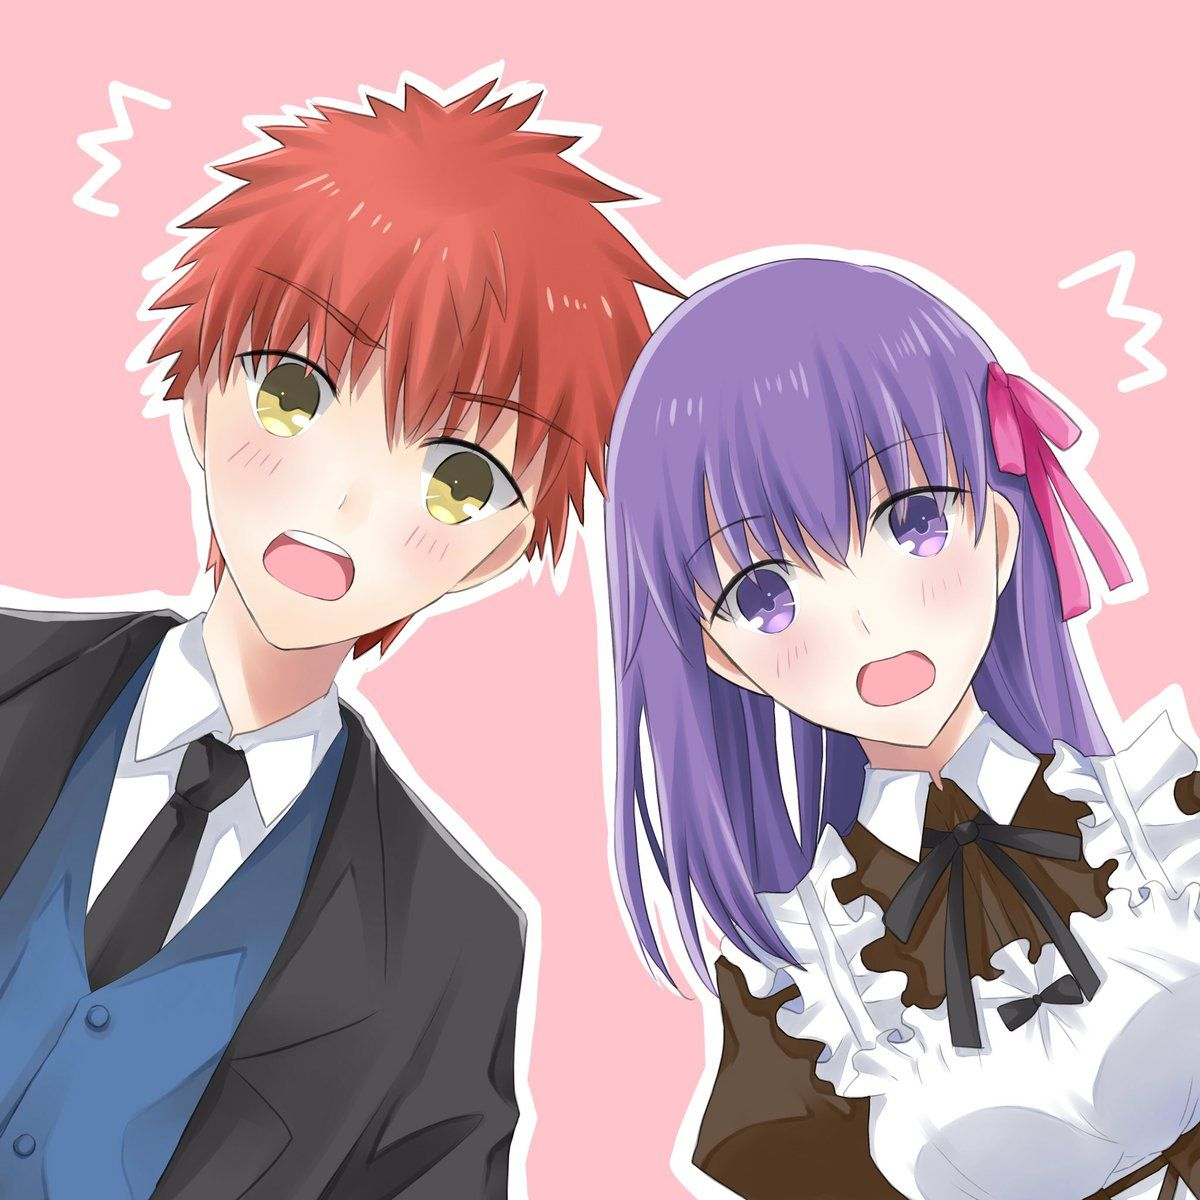 Shirou Emiya / Sakura Matou【Fate/Stay Night】 | Fate | Pinterest ...